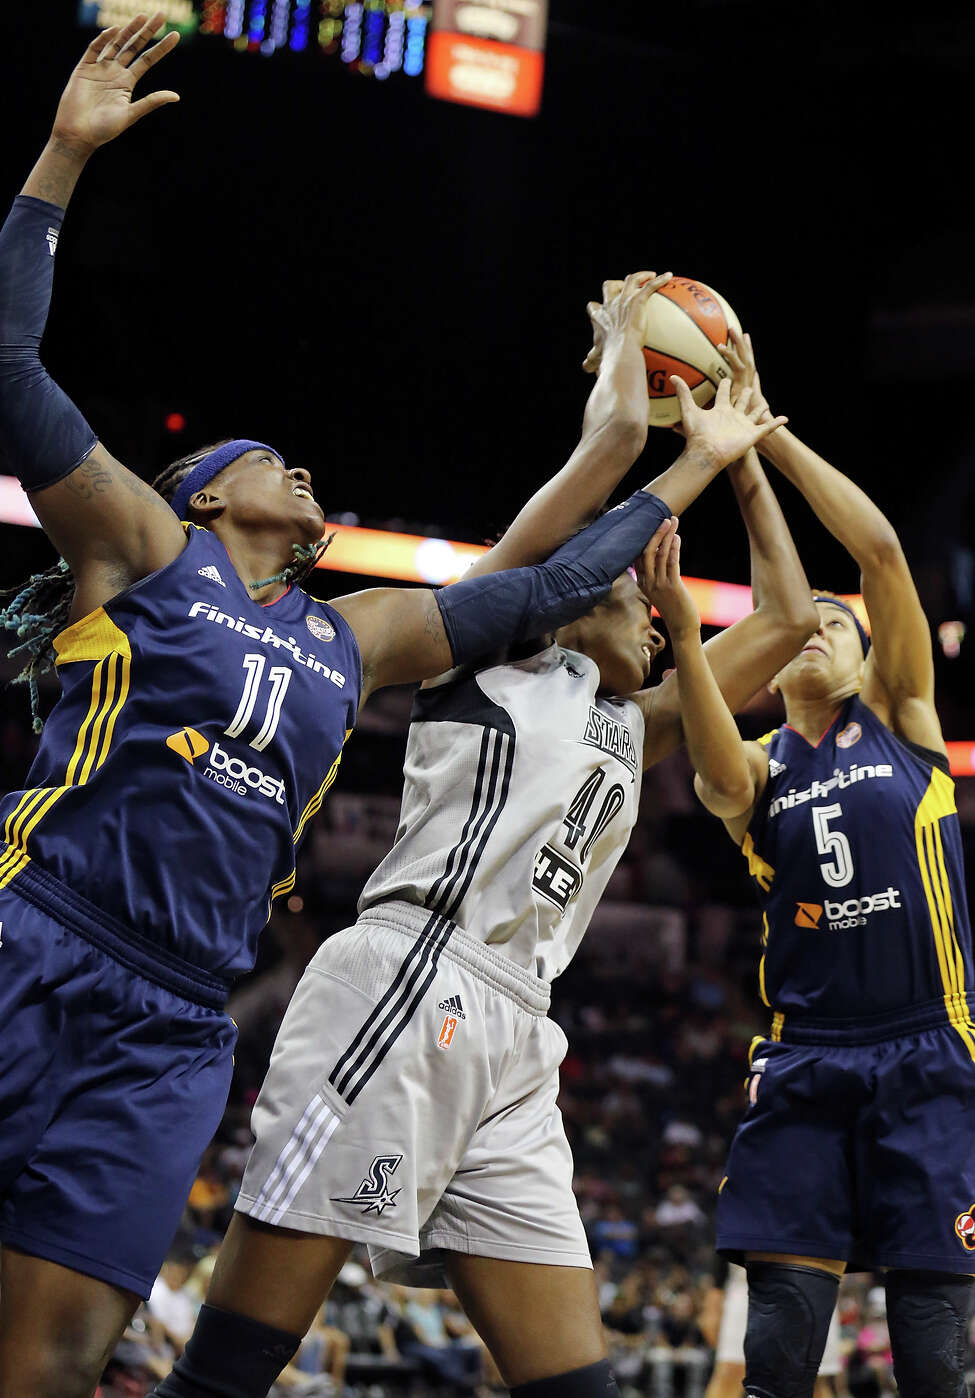 San Antonio Stars' Kayla Alexander grabs for a rebound between Indiana Fever's Lynetta Kizer (left) and Layshia Clarendon during first half action Saturday July 26, 2014 at the AT&T Center.